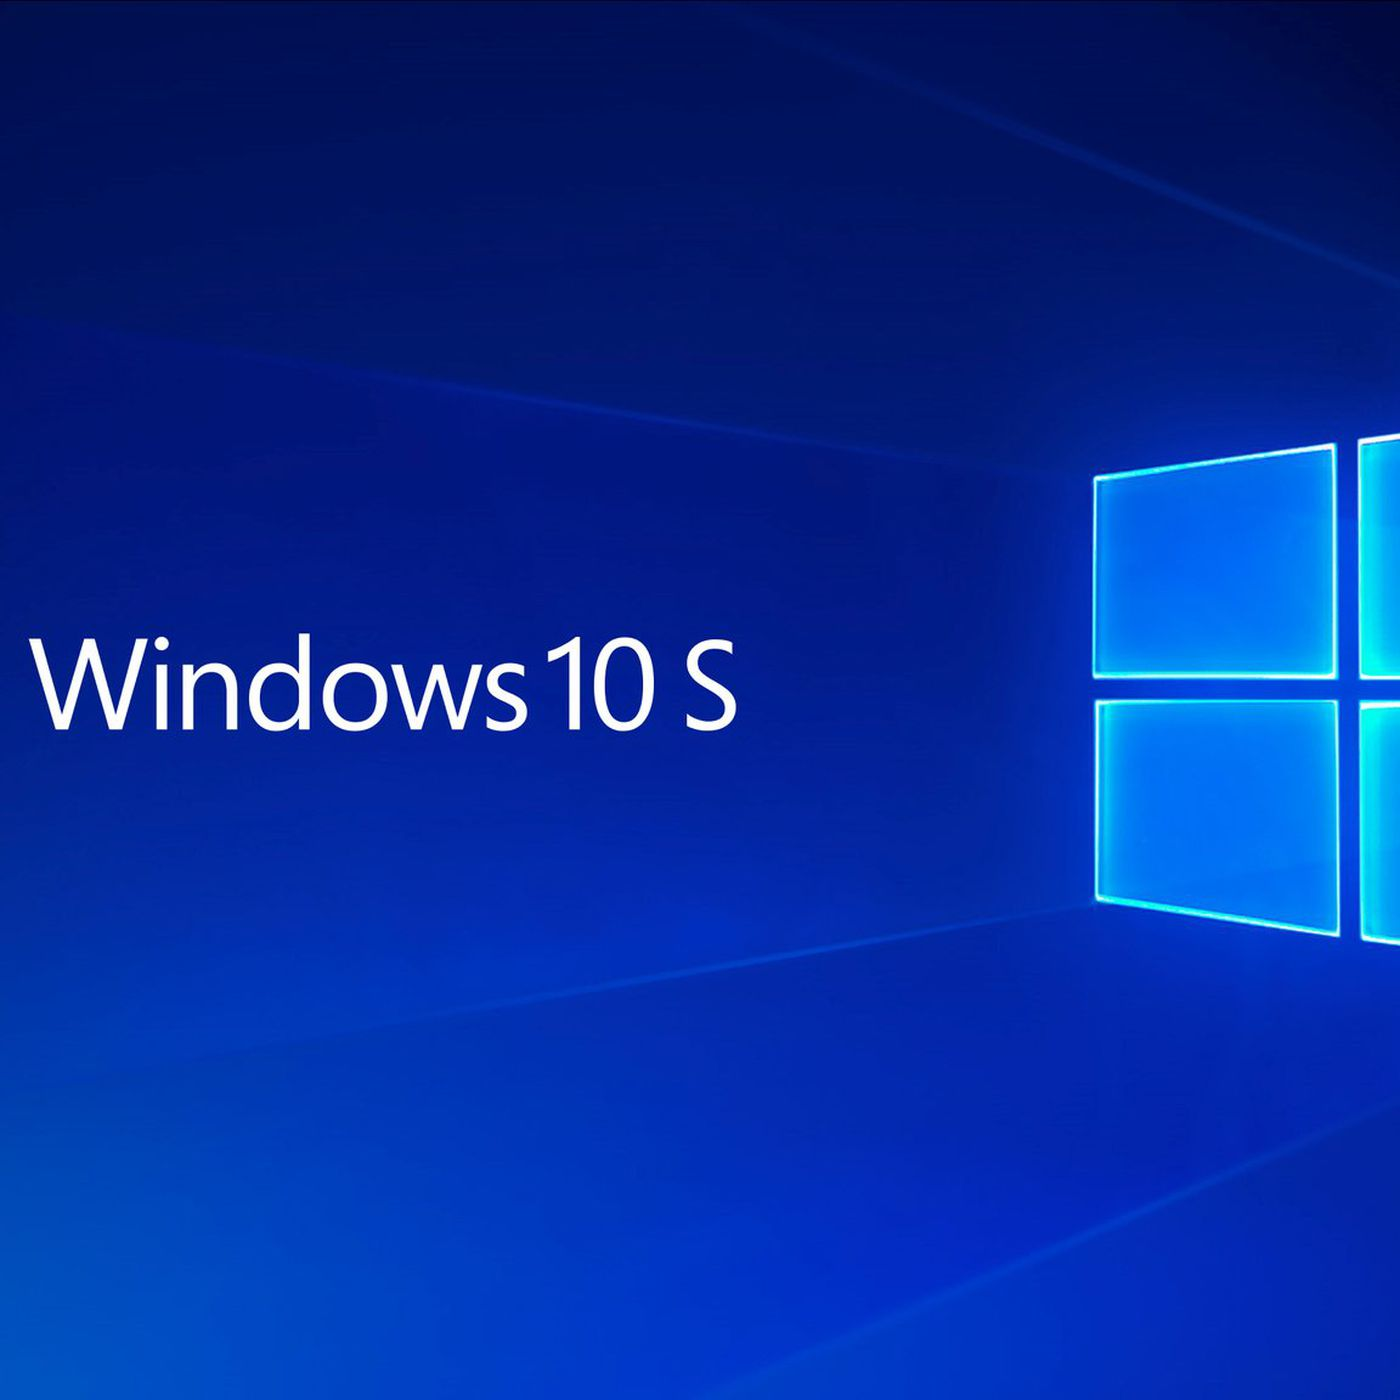 Windows 10 S Is Microsofts Answer To Chrome Os The Verge